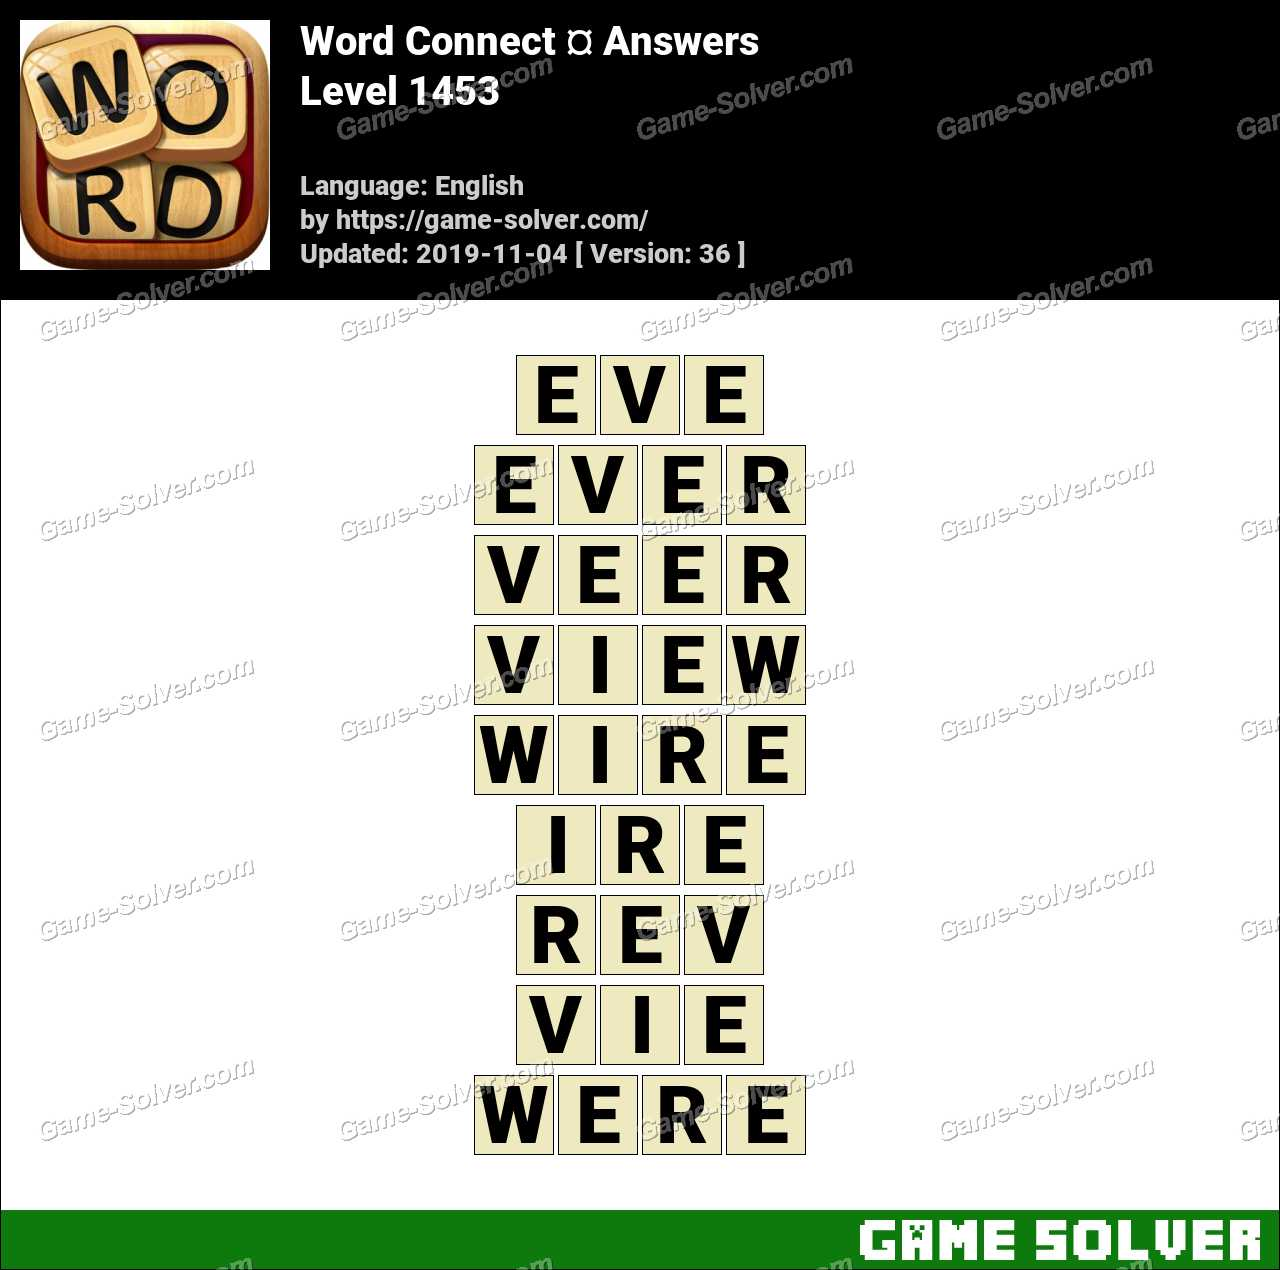 Word Connect Level 1453 Answers